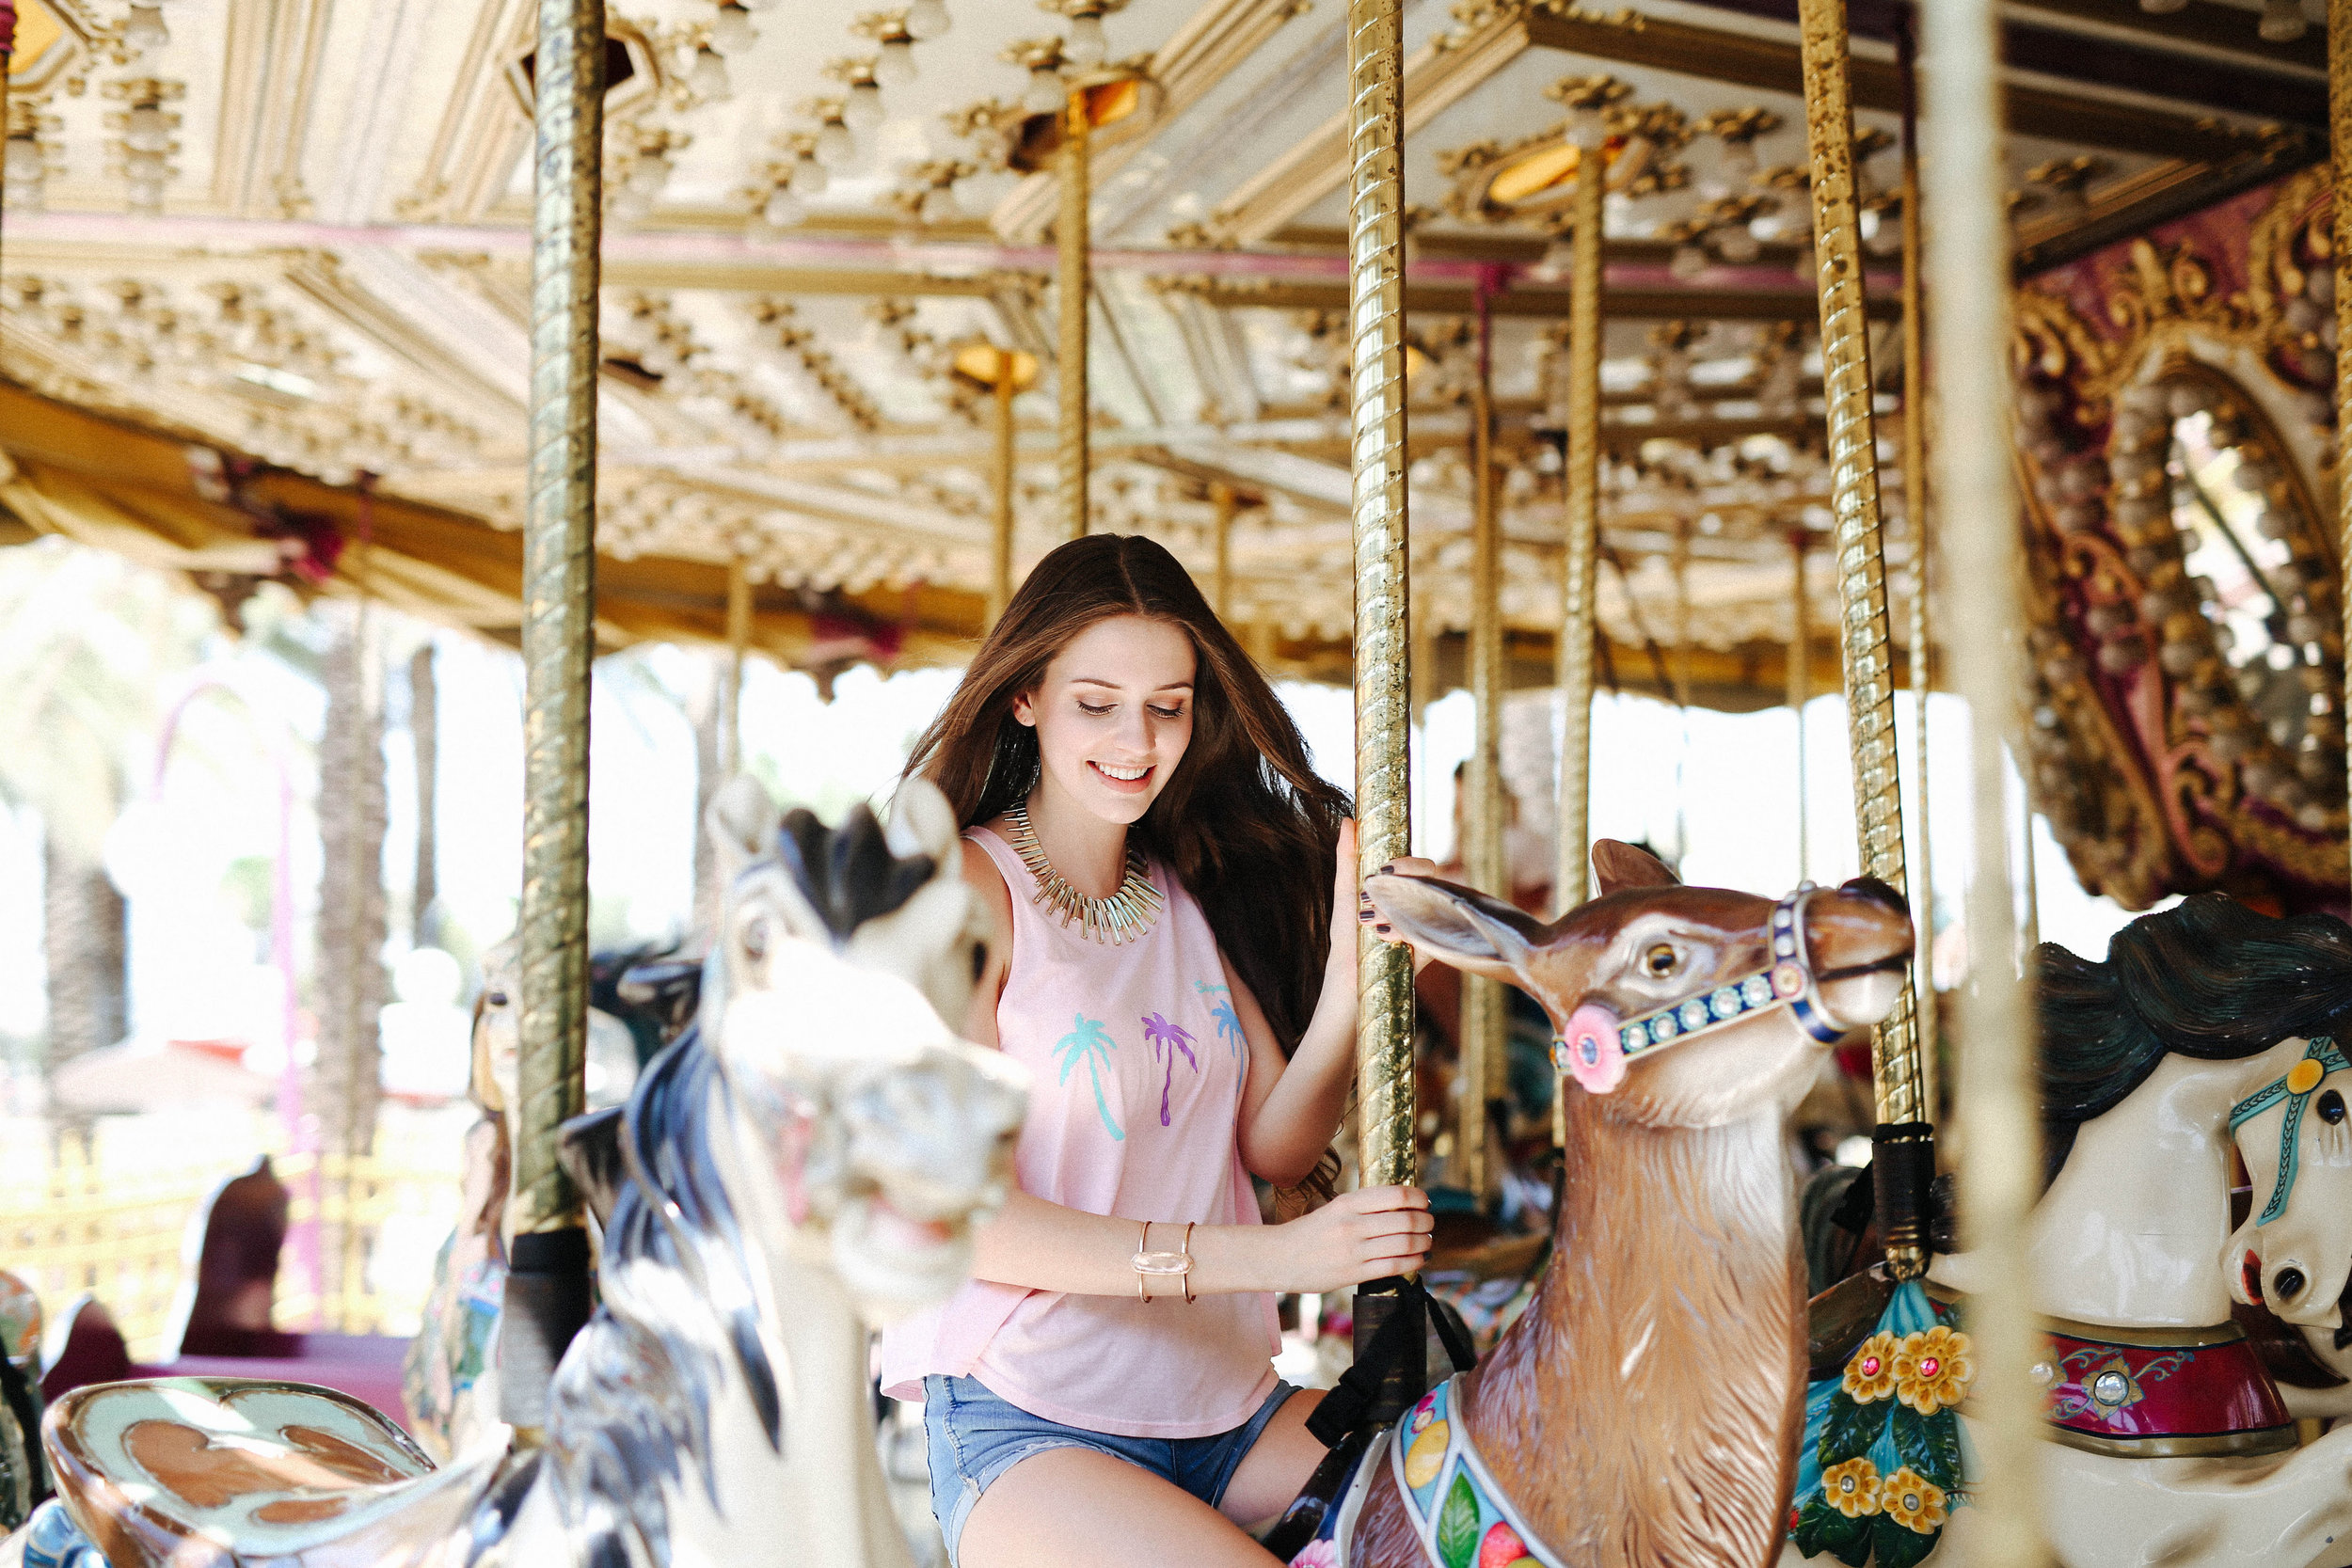 Woman riding the carousel